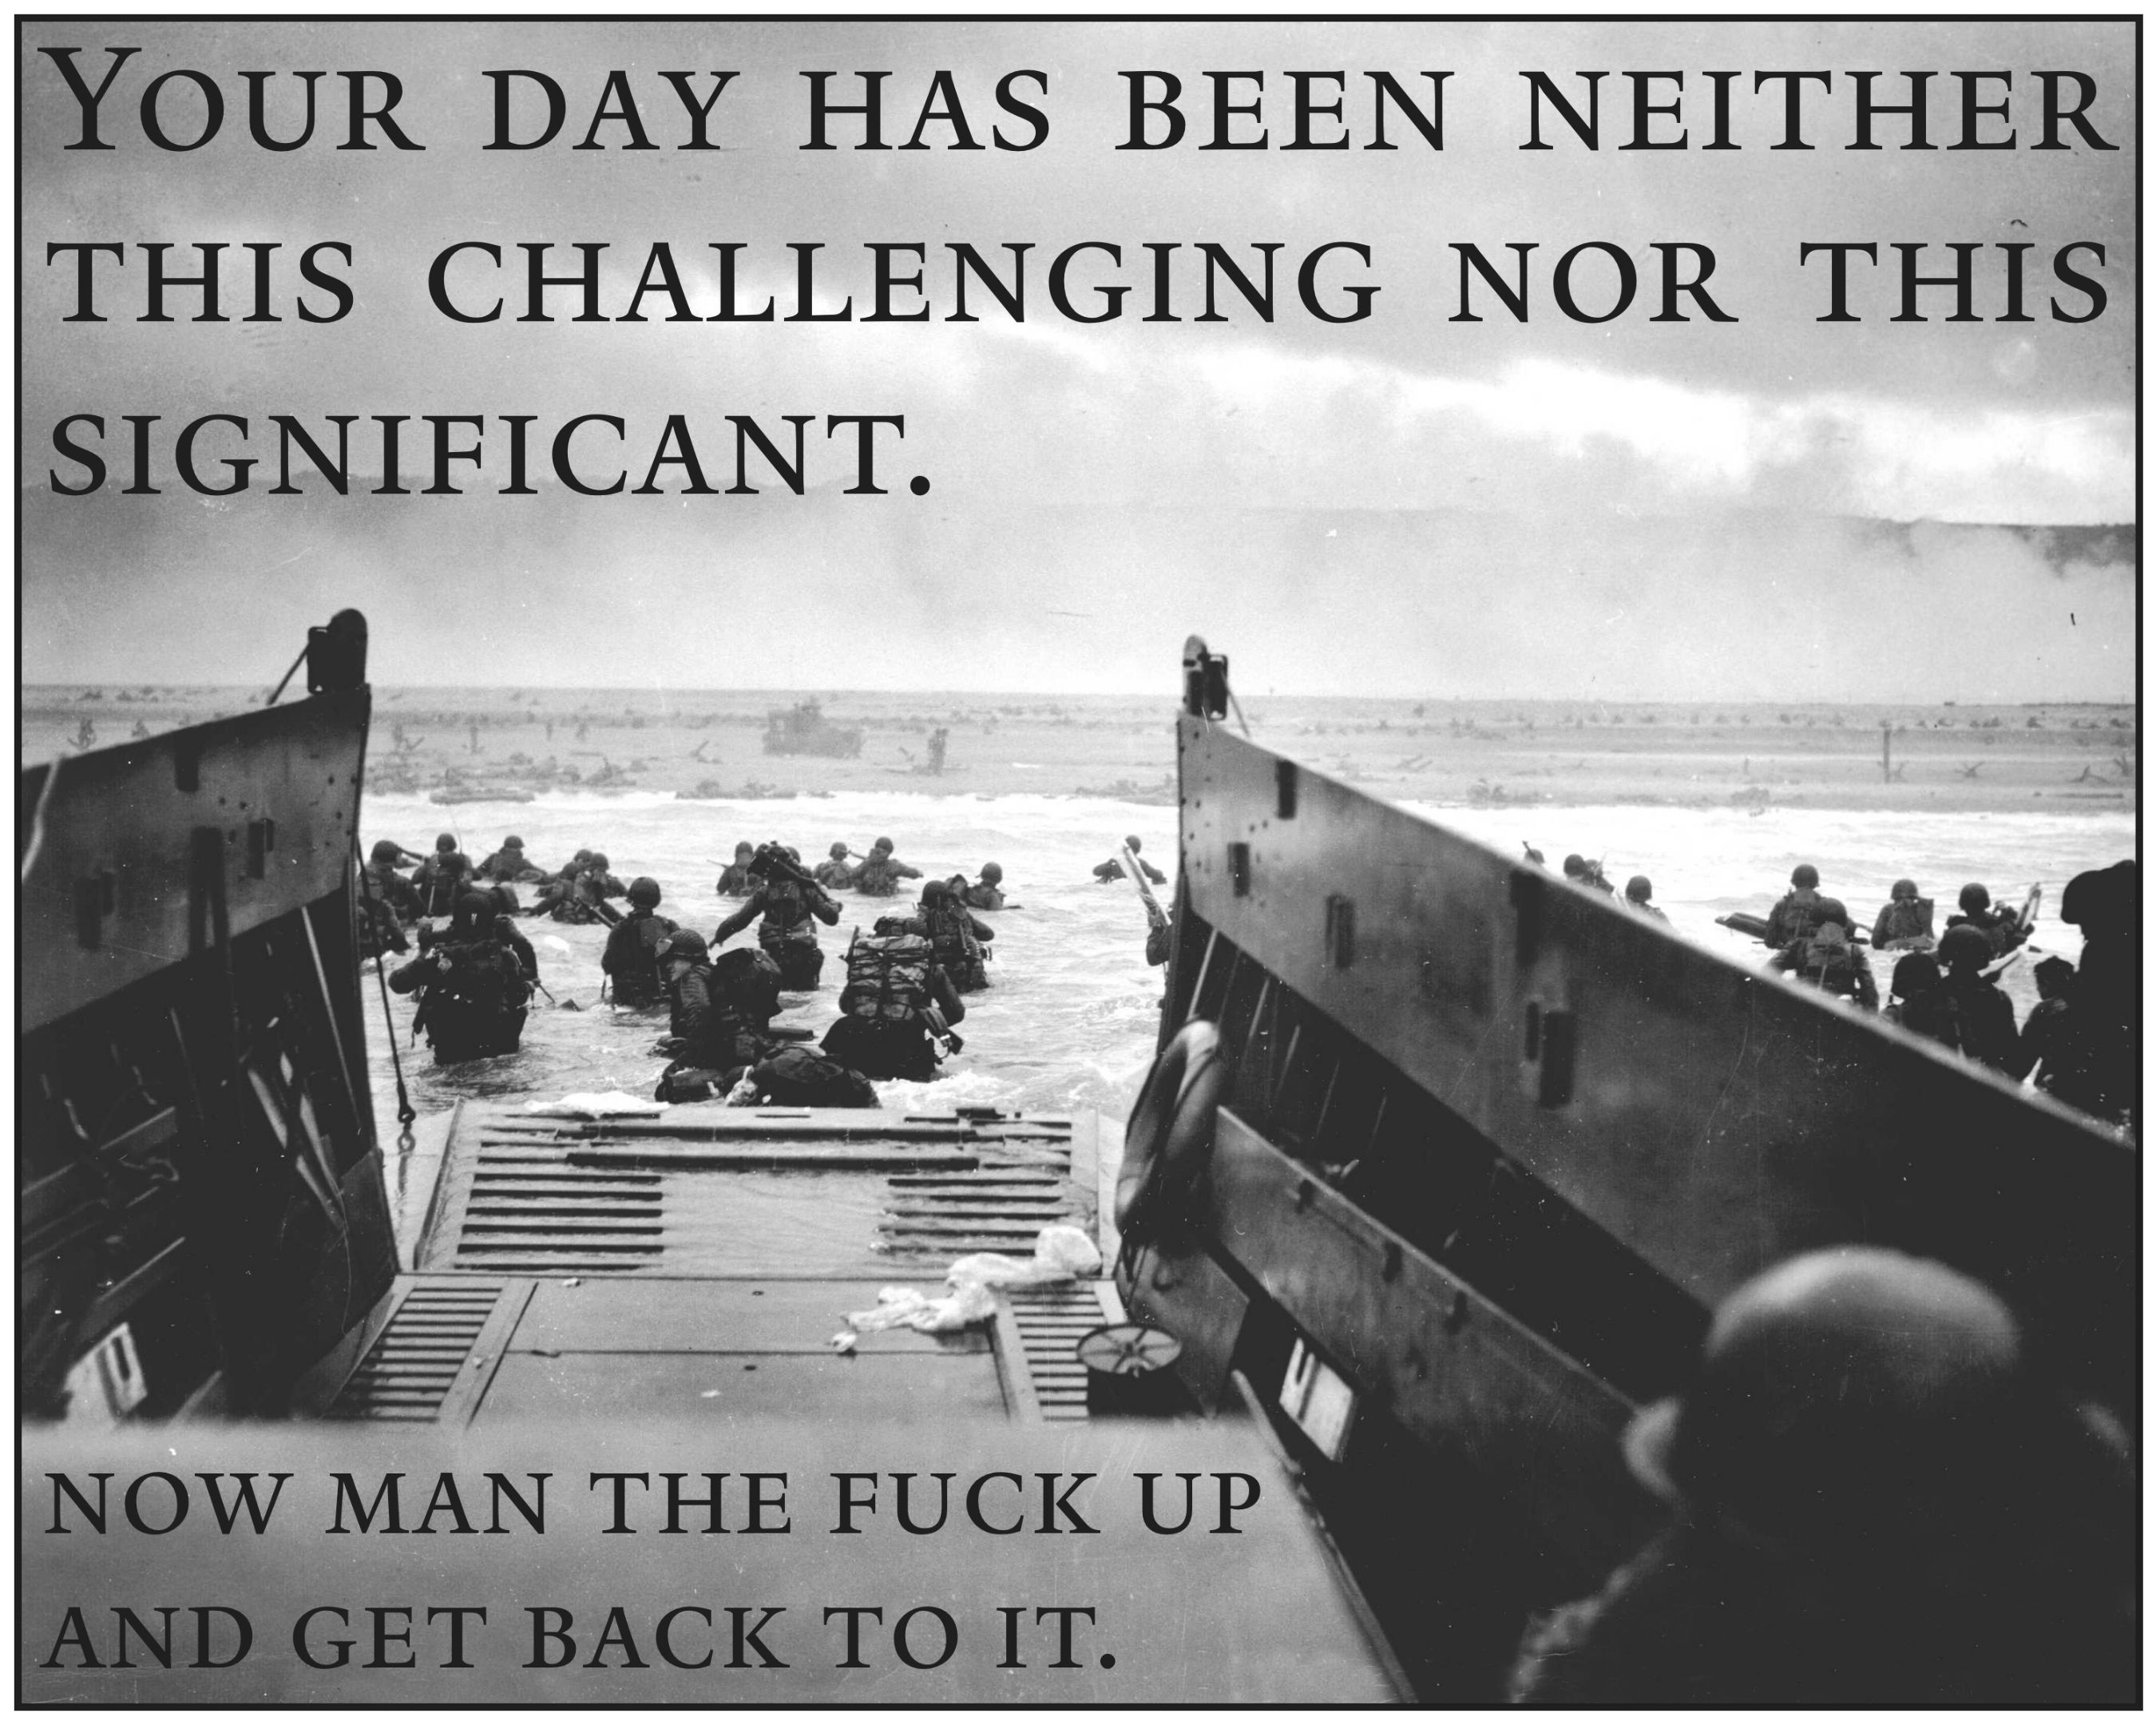 [Image] In honor of D-Day, this is the image that's framed & on my desk.